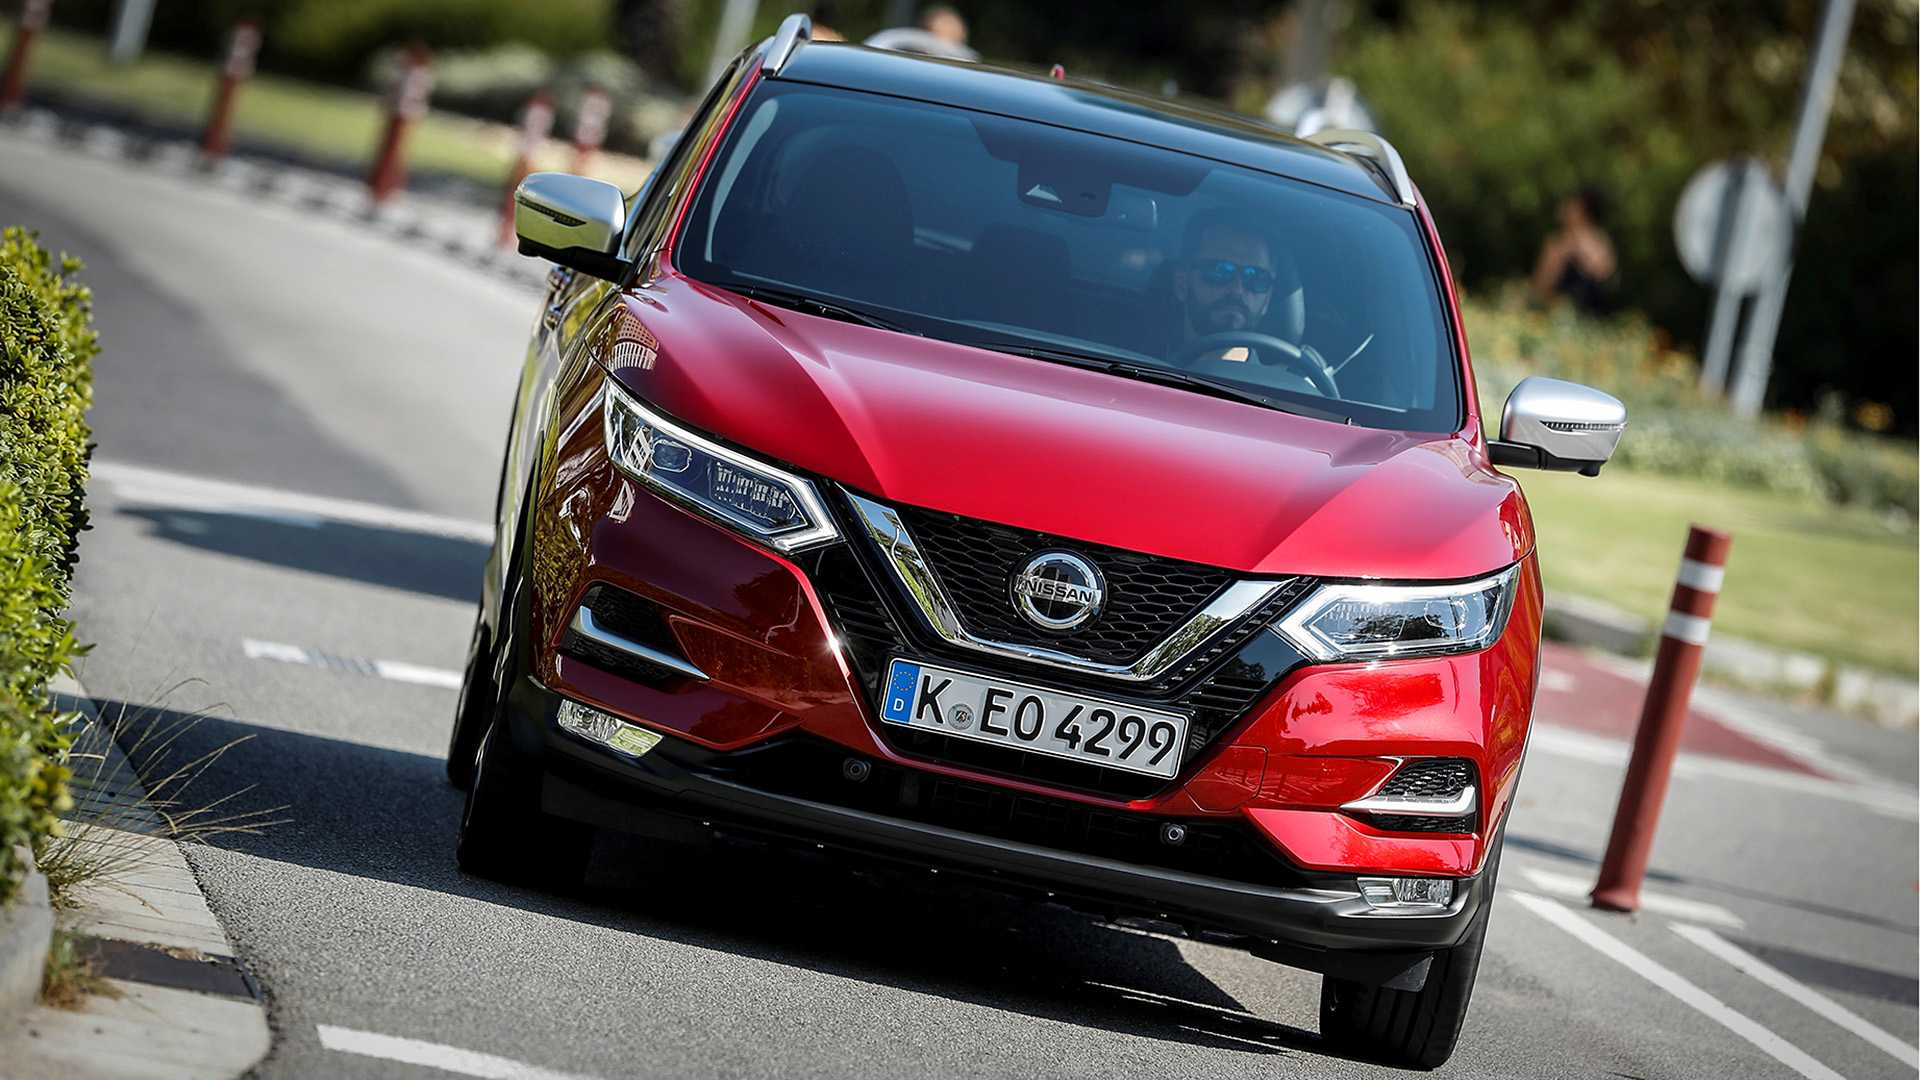 54 The Nissan Qashqai 2019 Style